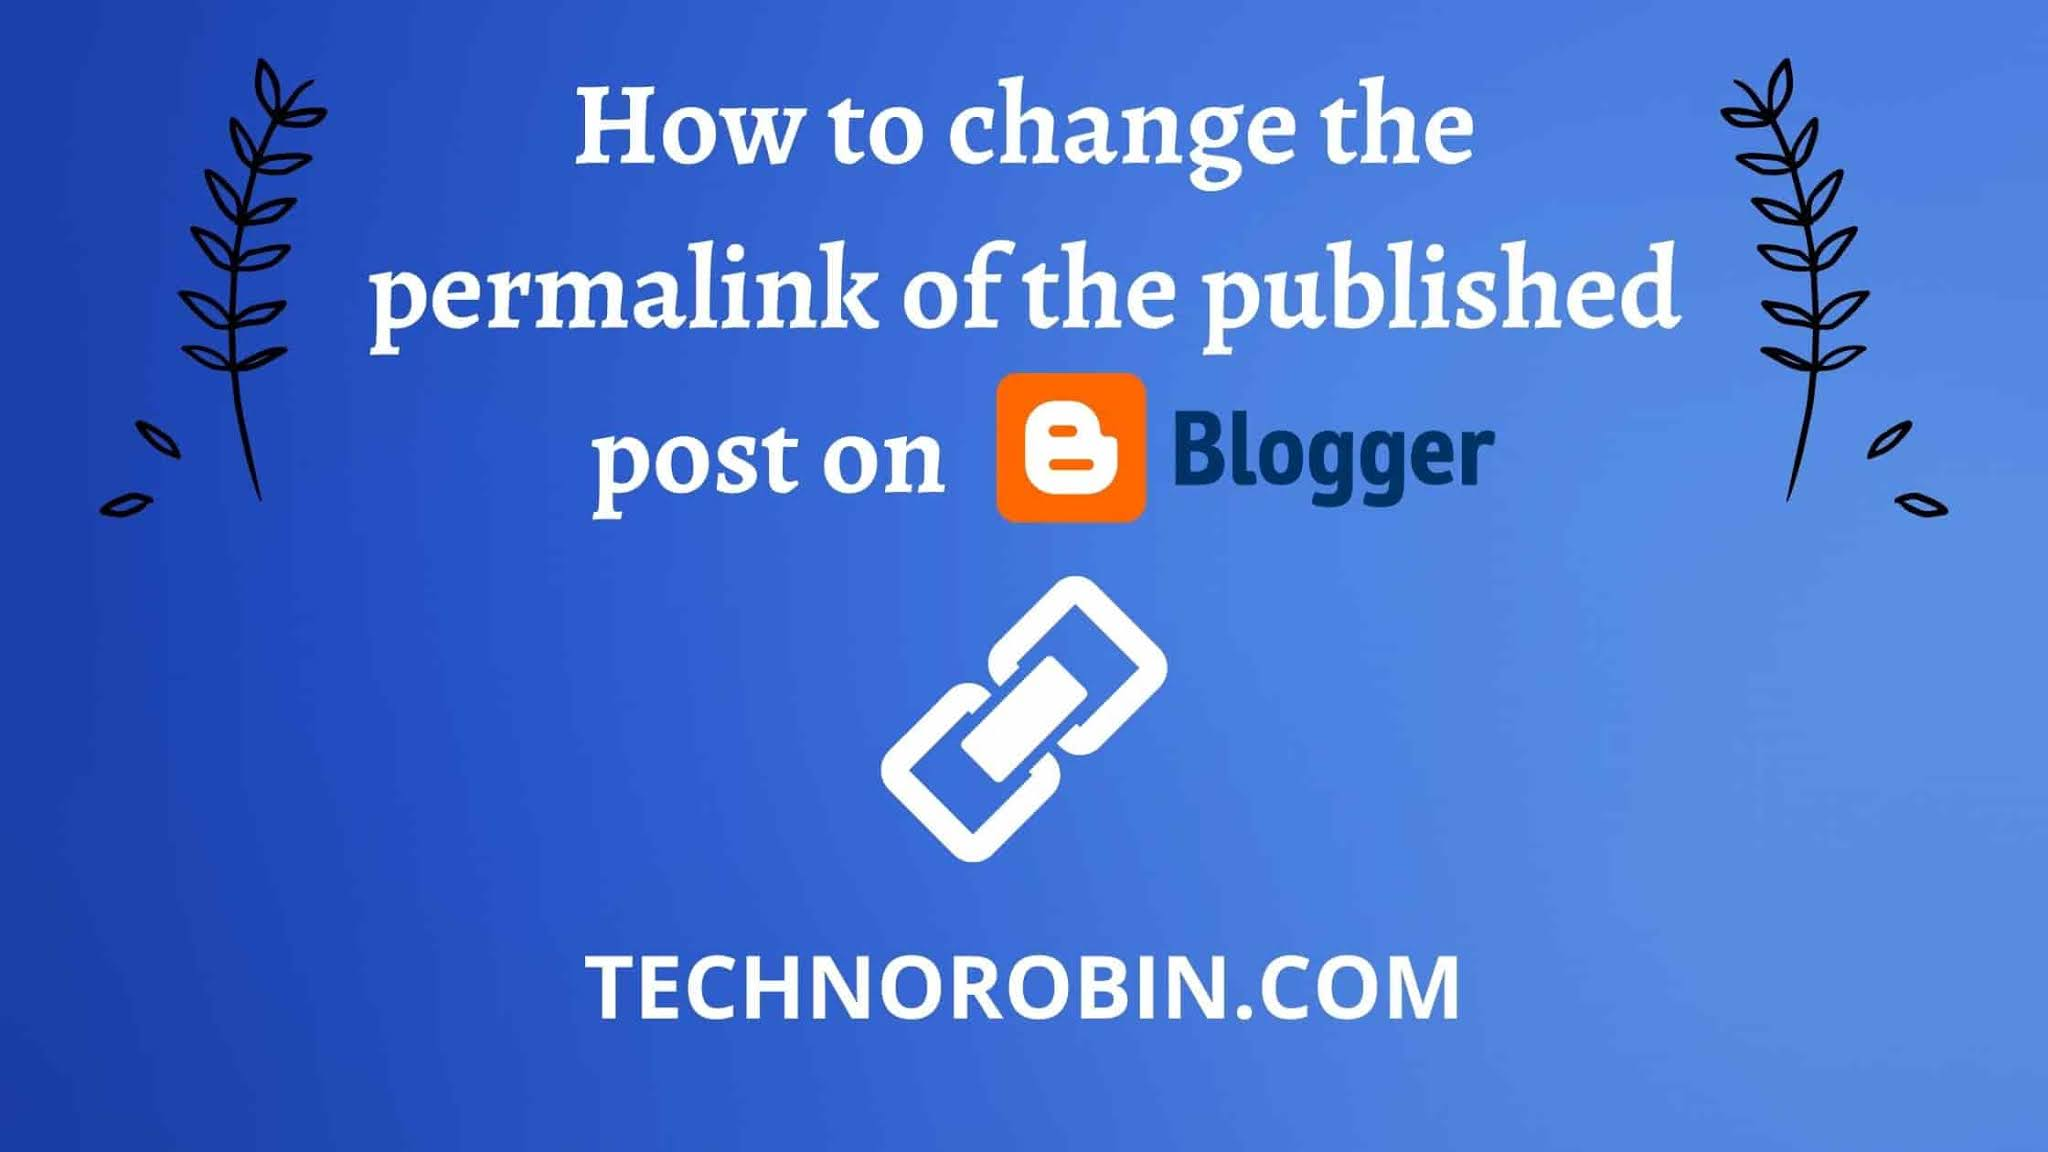 How to change the permalink of the published post on Blogger